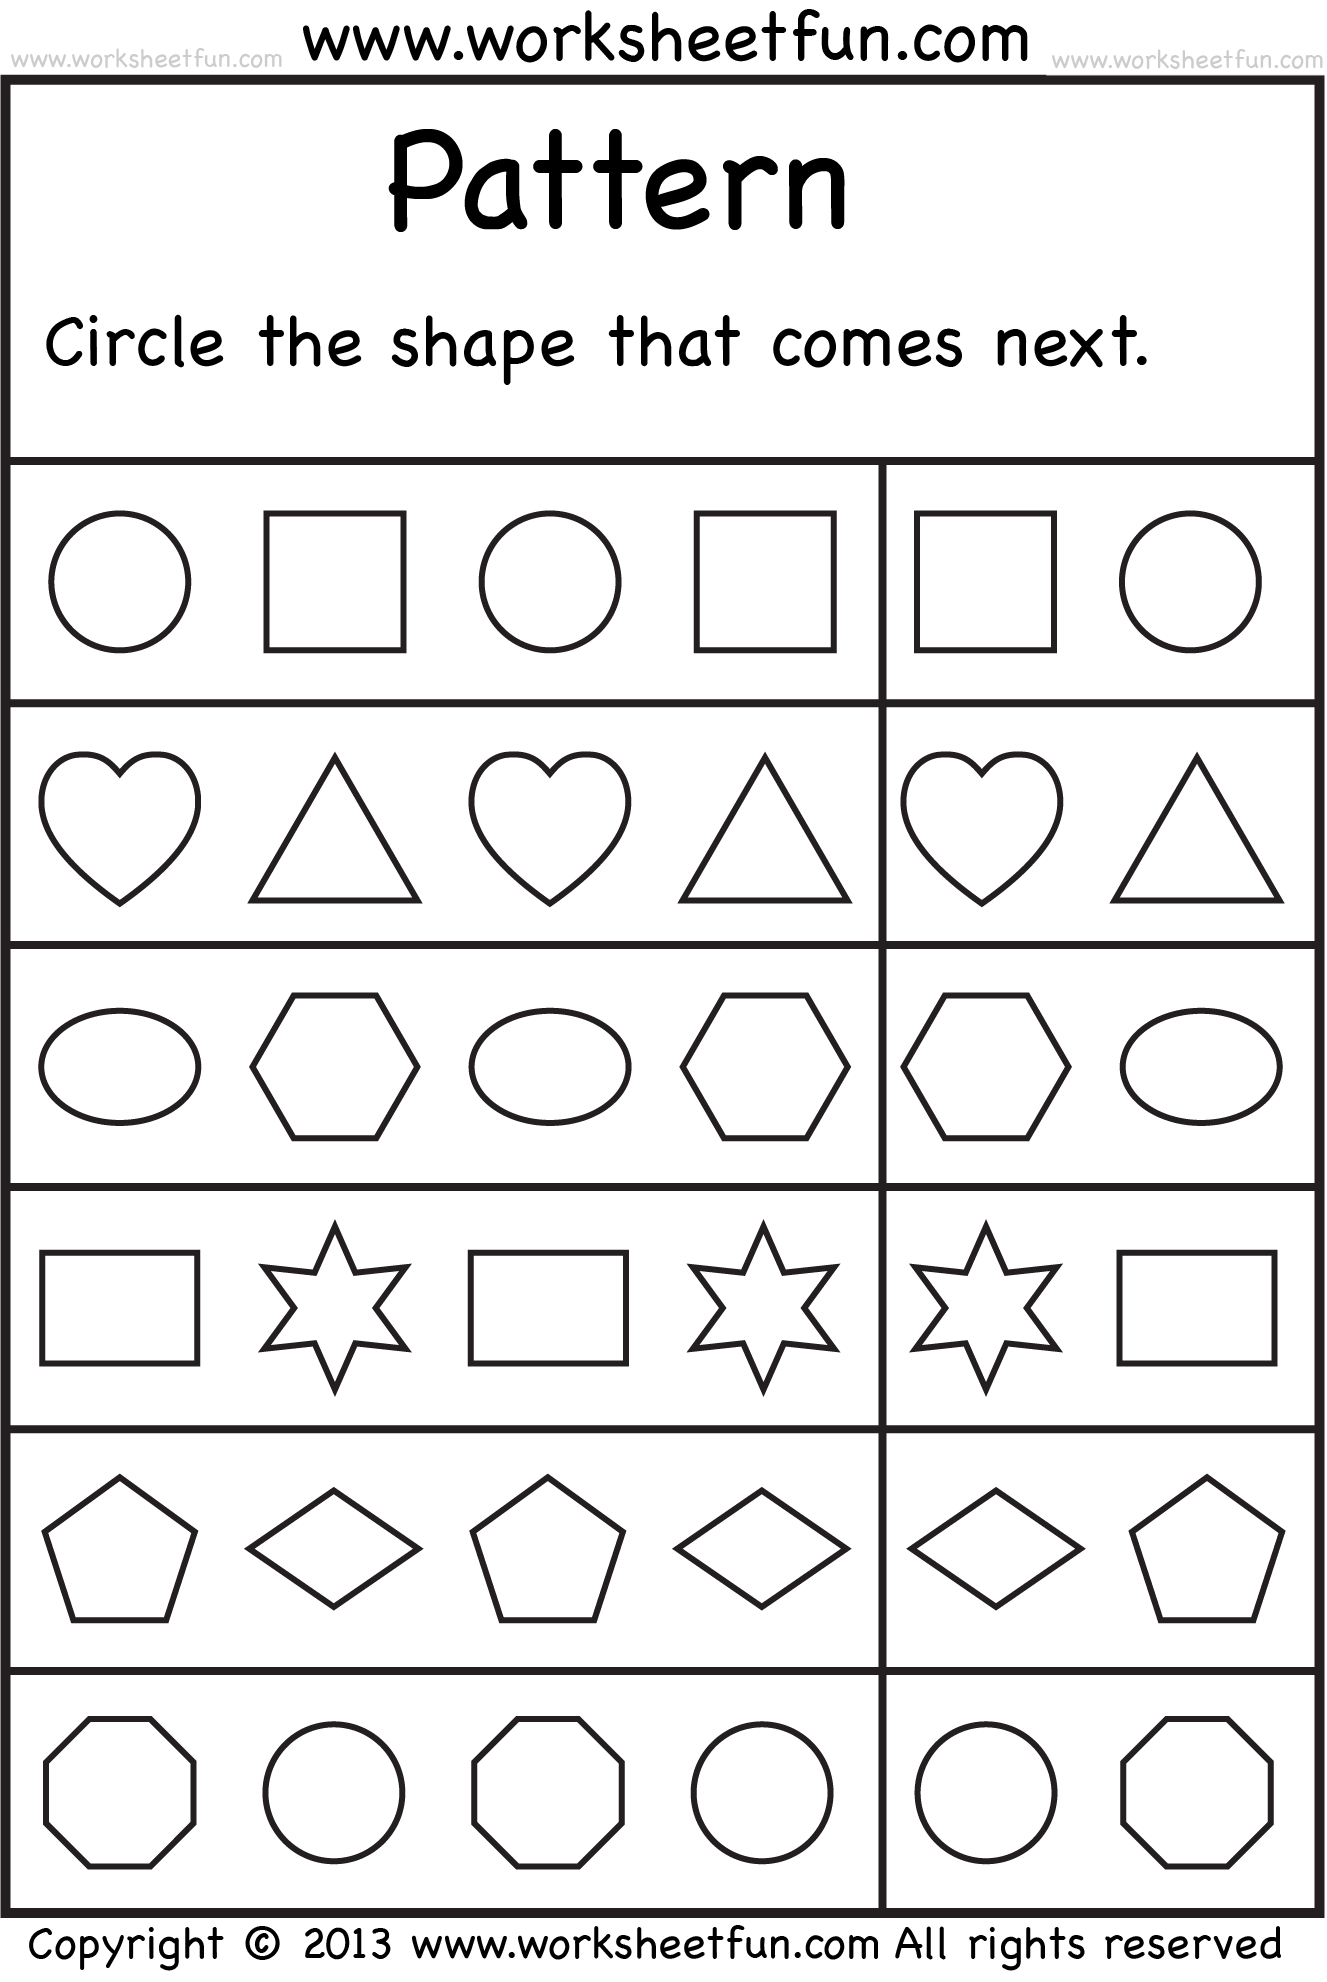 Aldiablosus  Unique  Images About School Worksheets On Pinterest  Number Words  With Goodlooking  Images About School Worksheets On Pinterest  Number Words Alphabet Worksheets And Free Printable Kindergarten Worksheets With Beauteous Solving Multiplication Equations Worksheets Also Maths Worksheet Generator In Addition Exponential Equations Worksheets And Imperative And Exclamatory Sentences Worksheets As Well As Lent Worksheets For Children Additionally Grade  Maths Worksheets With Answers From Pinterestcom With Aldiablosus  Goodlooking  Images About School Worksheets On Pinterest  Number Words  With Beauteous  Images About School Worksheets On Pinterest  Number Words Alphabet Worksheets And Free Printable Kindergarten Worksheets And Unique Solving Multiplication Equations Worksheets Also Maths Worksheet Generator In Addition Exponential Equations Worksheets From Pinterestcom